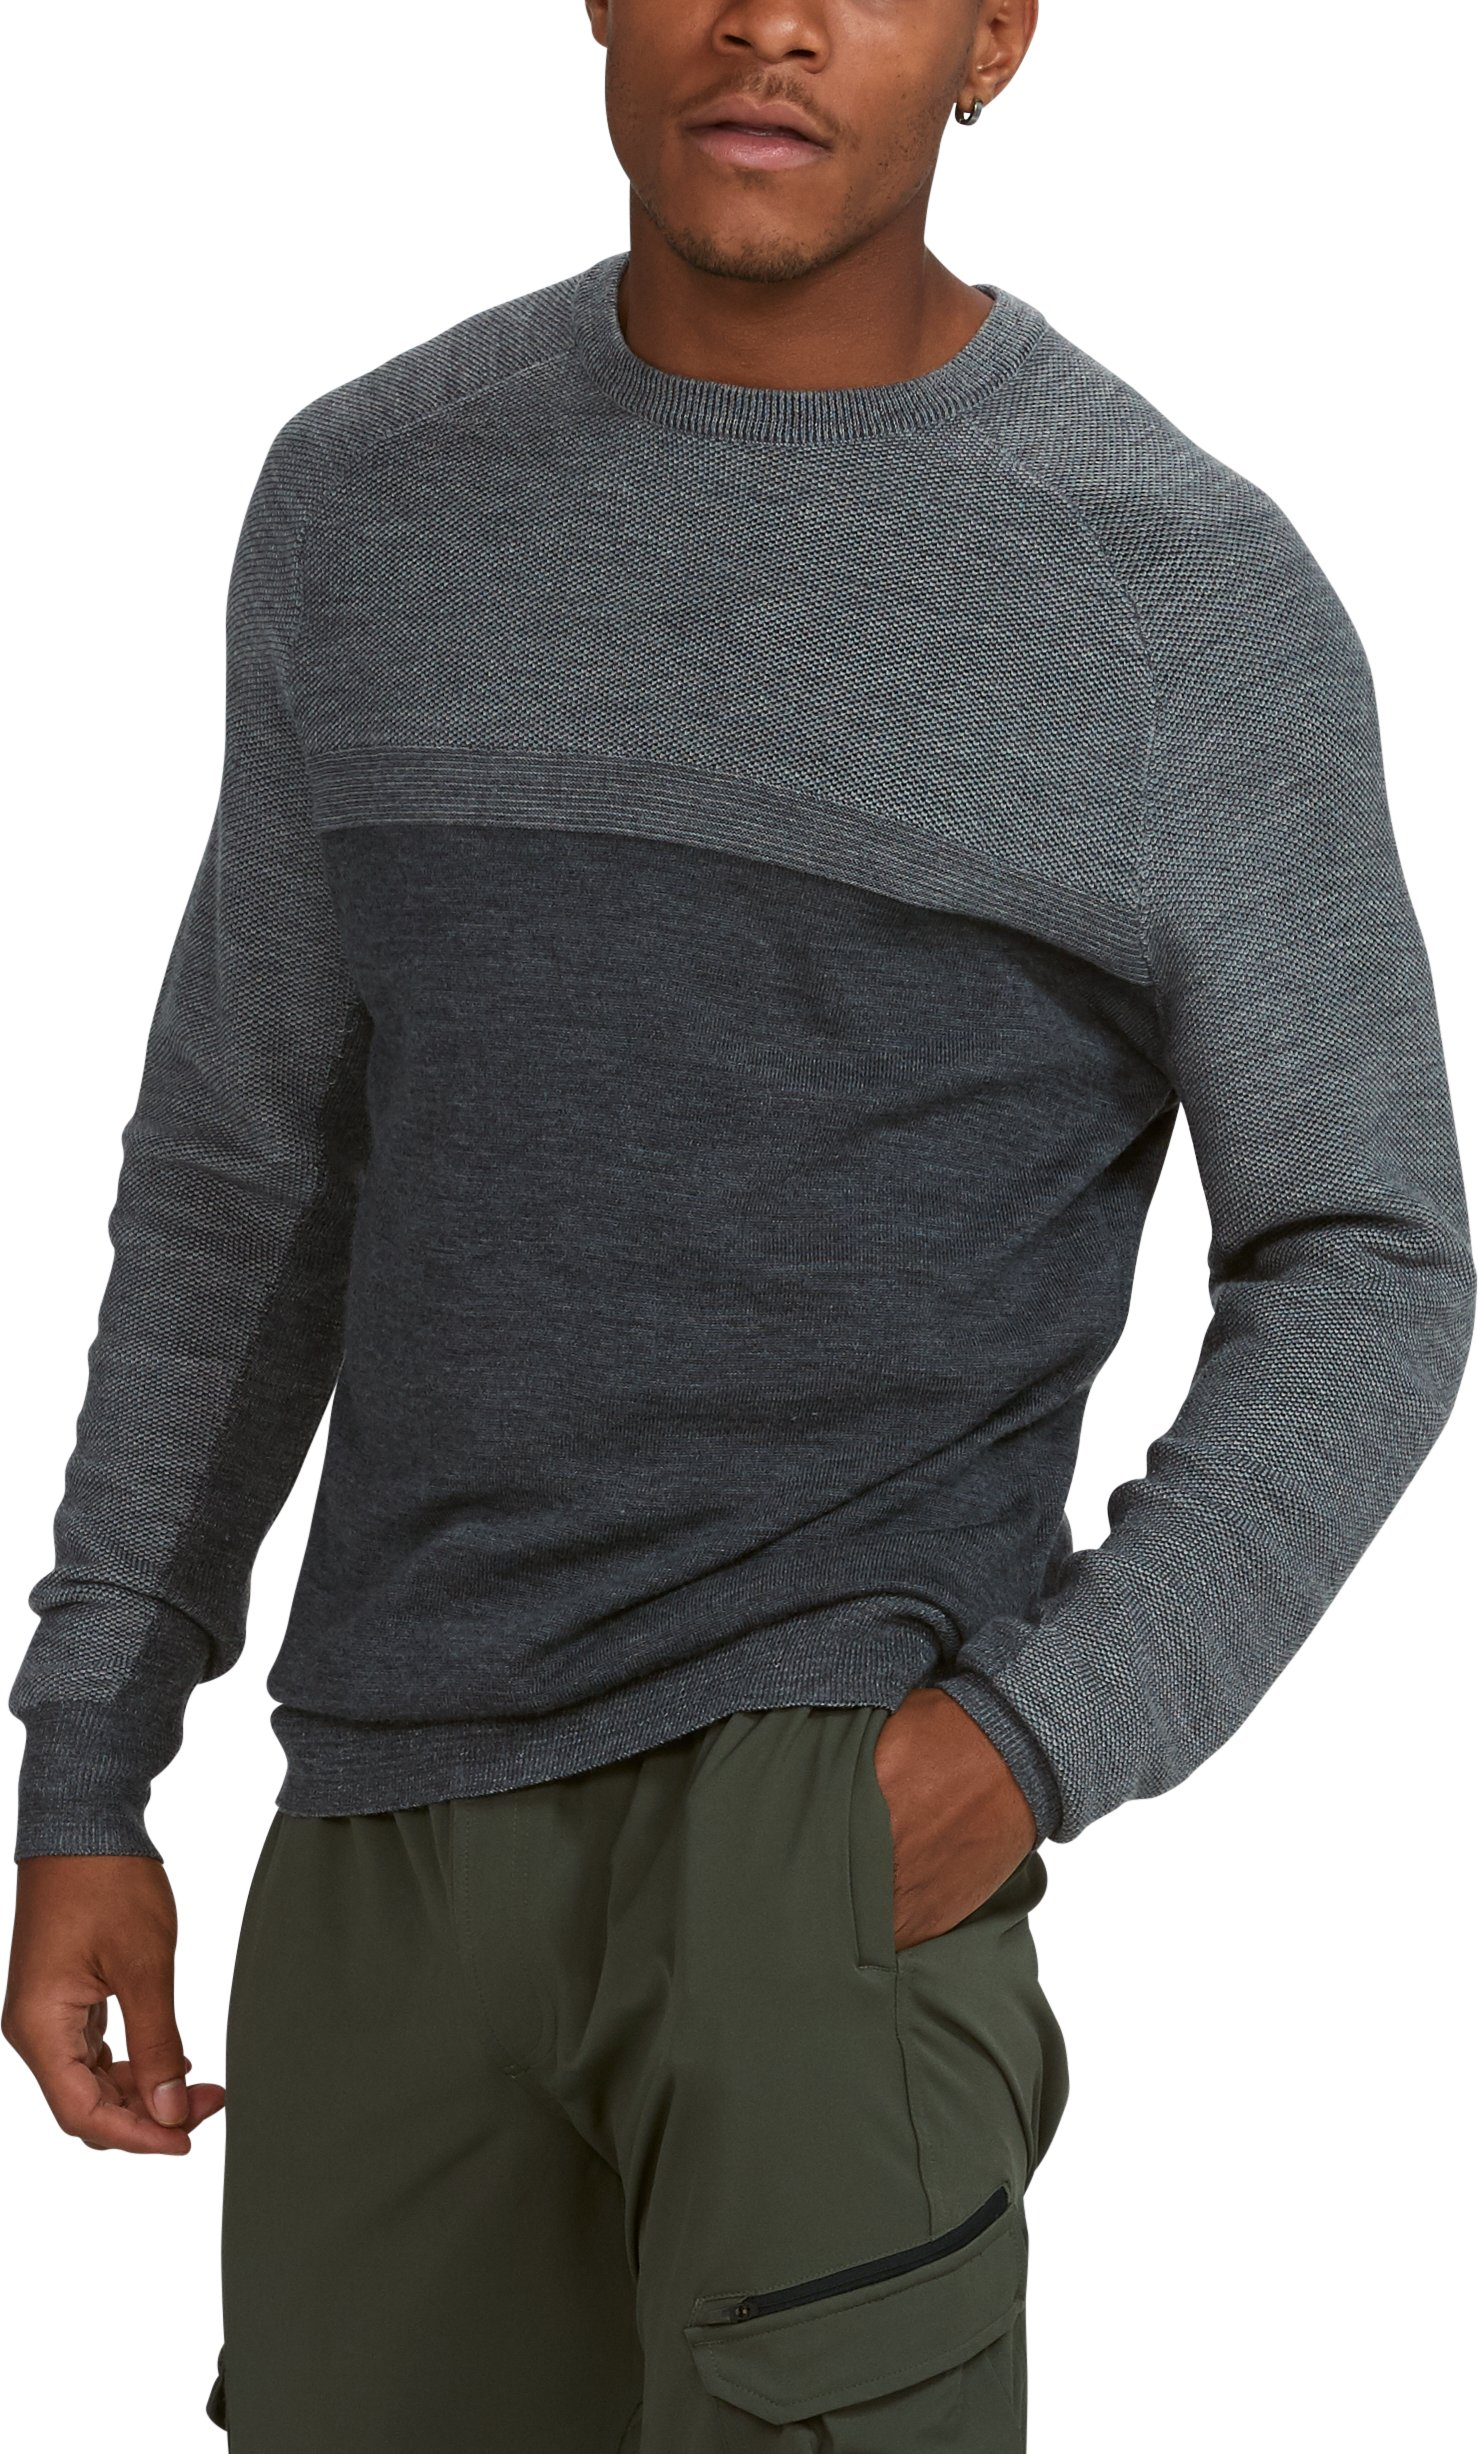 small sweaters Men's UA Threadborne Crew Sweater That being said, this sweater looks very sharp and is good quality....The medium fits me absolutely perfectly, sleeves and all....I also like that there is no logo on the front.